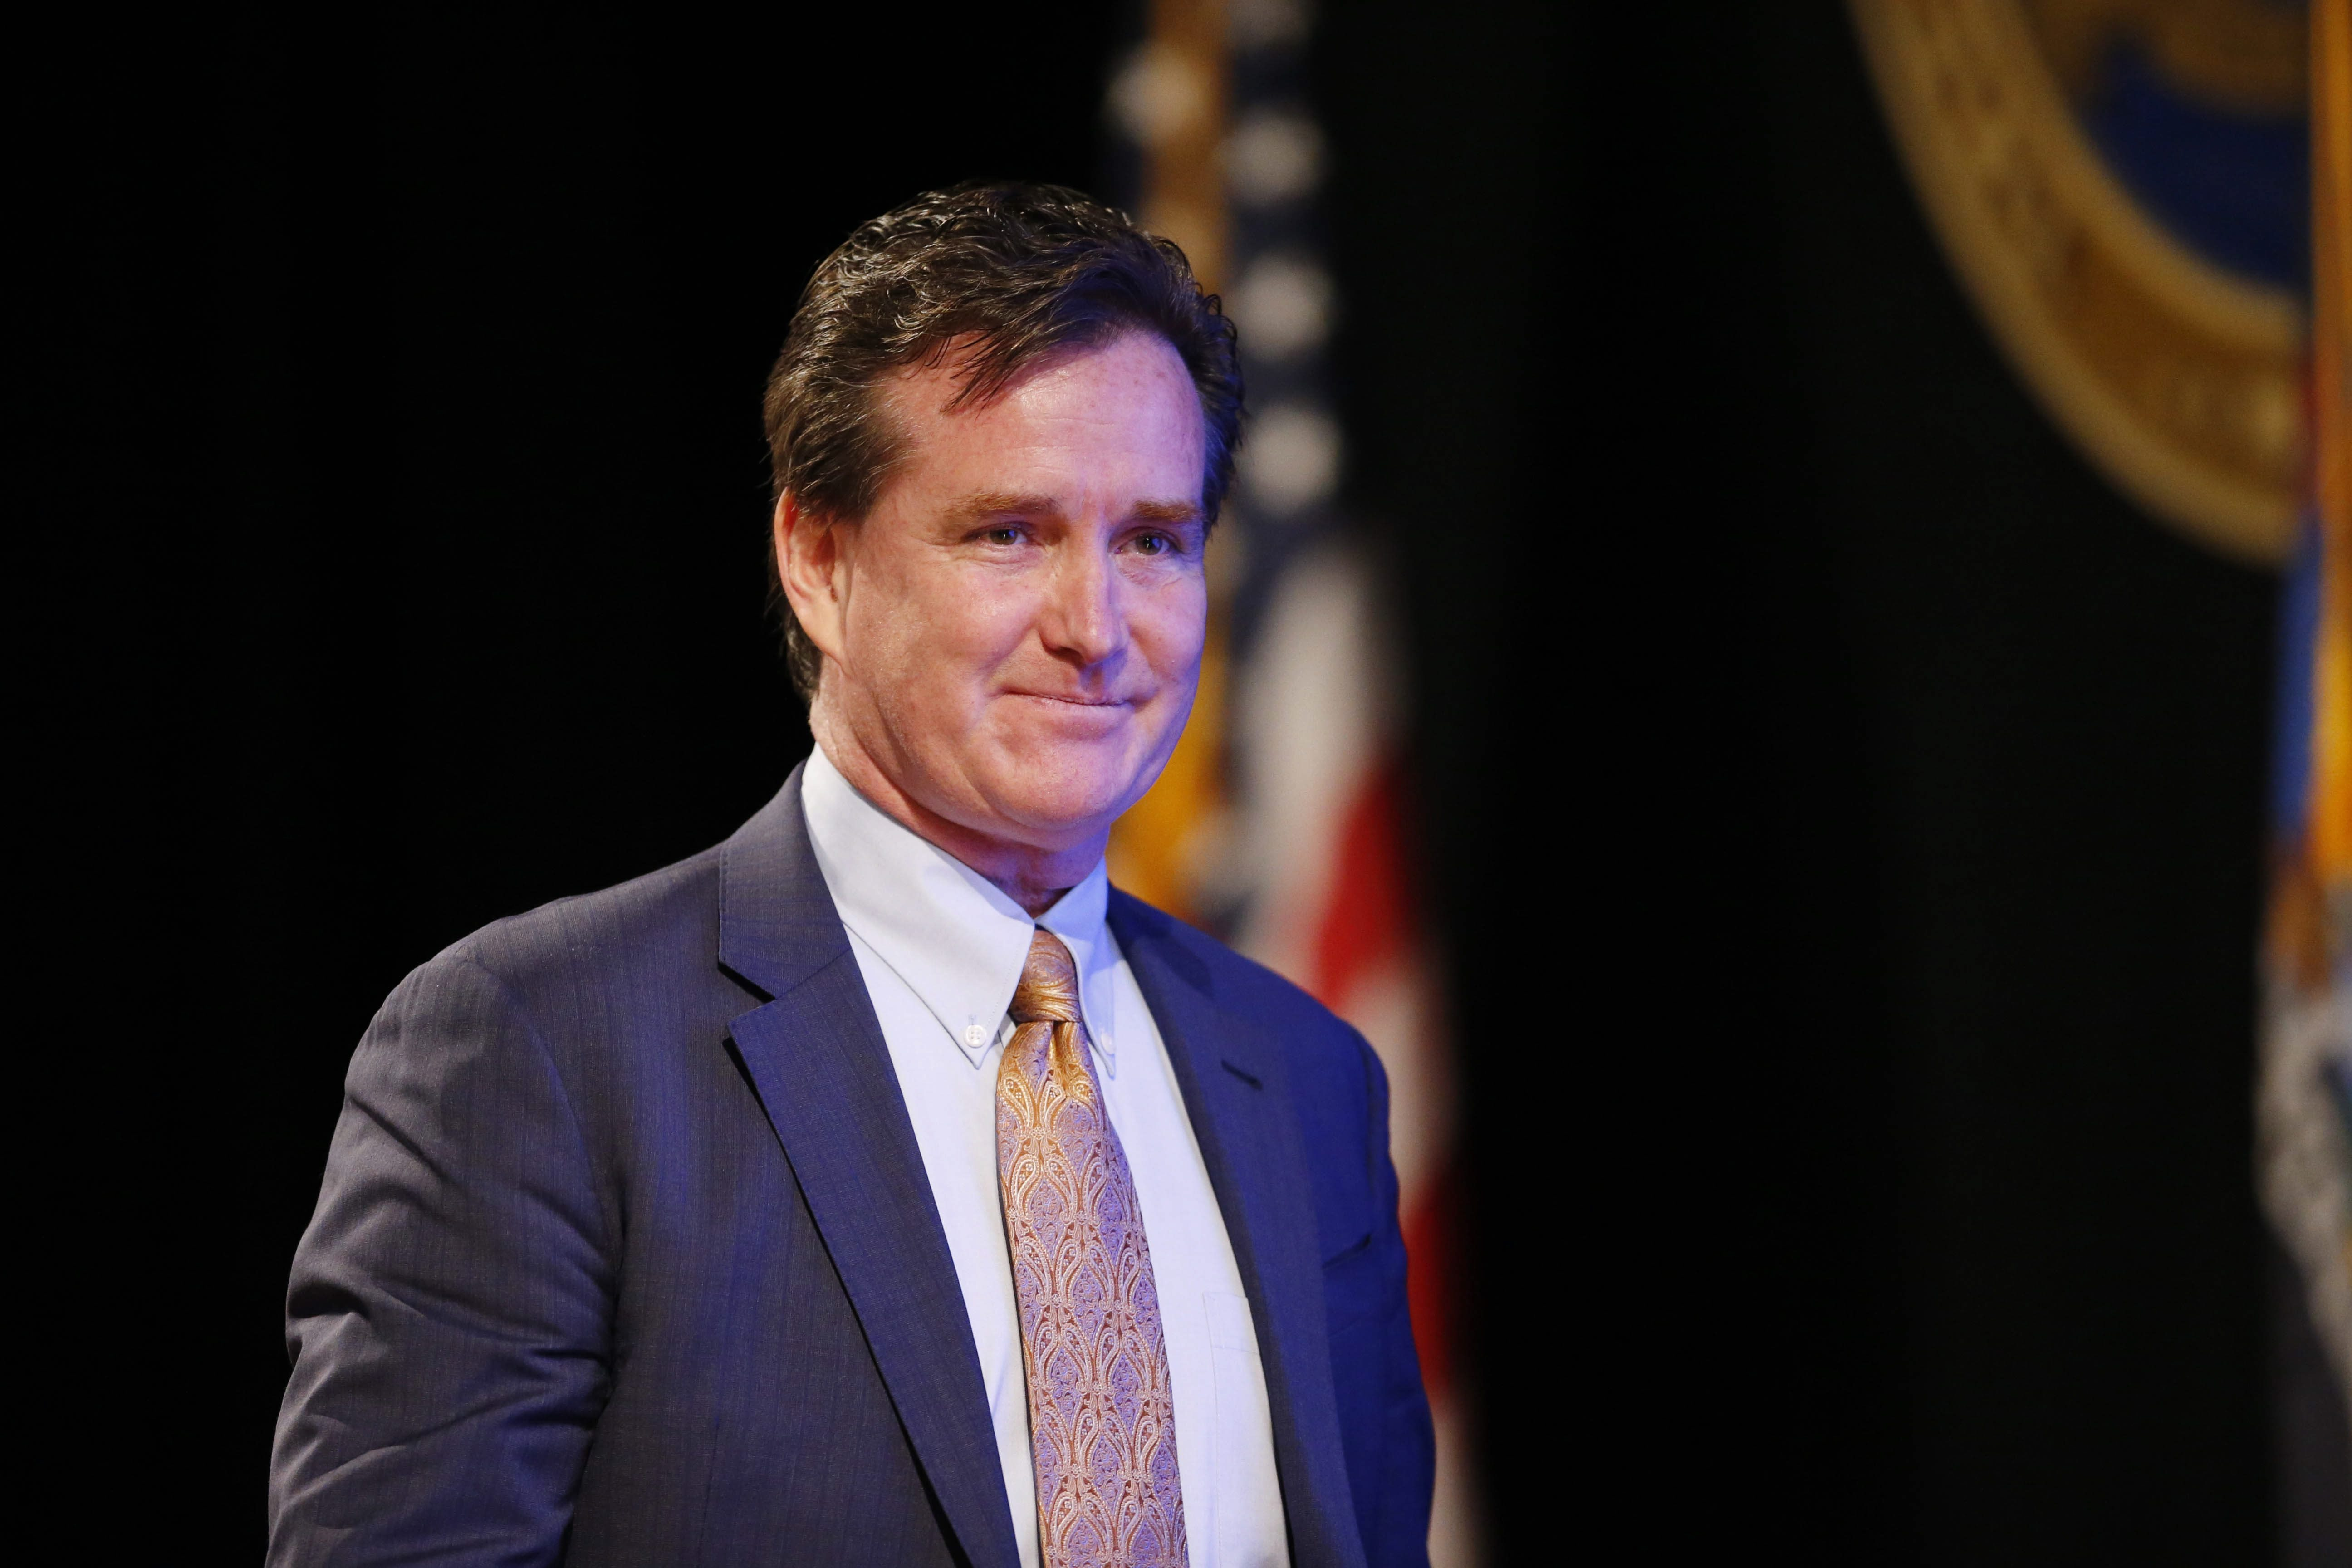 State Senate President and Majority Leader John J. Flanagan takes the stage at the State of the State at the Empire State Plaza Convention Center in Albany, Wednesday, Jan. 13, 2016. (Derek Gee/Buffalo News)